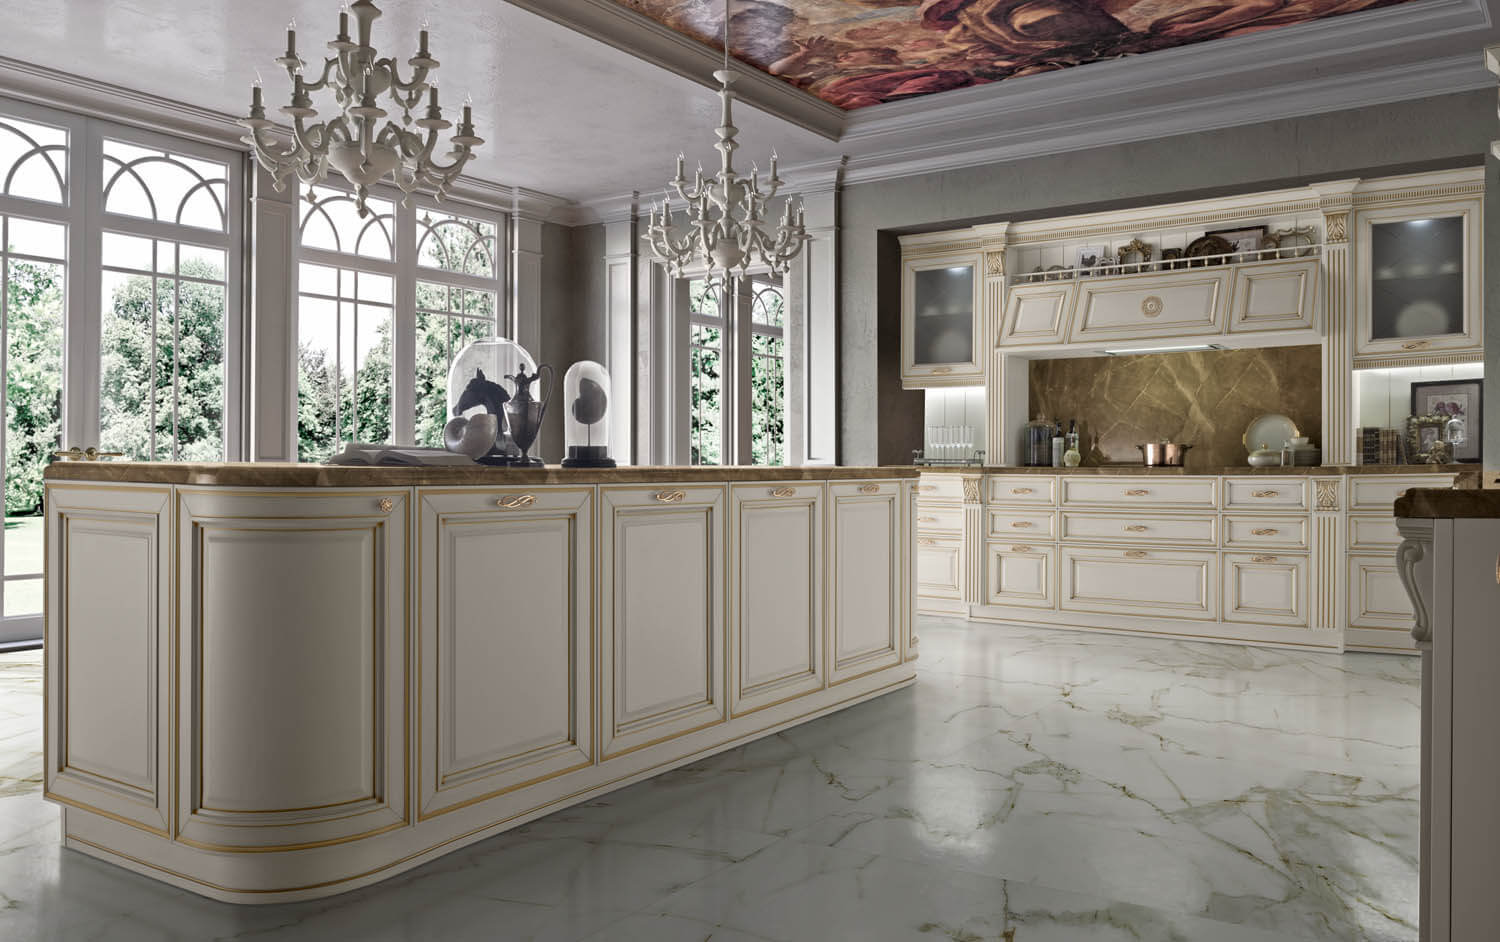 italian kitchen cabinets los angeles roselawnlutheran On kitchen cabinets los angeles